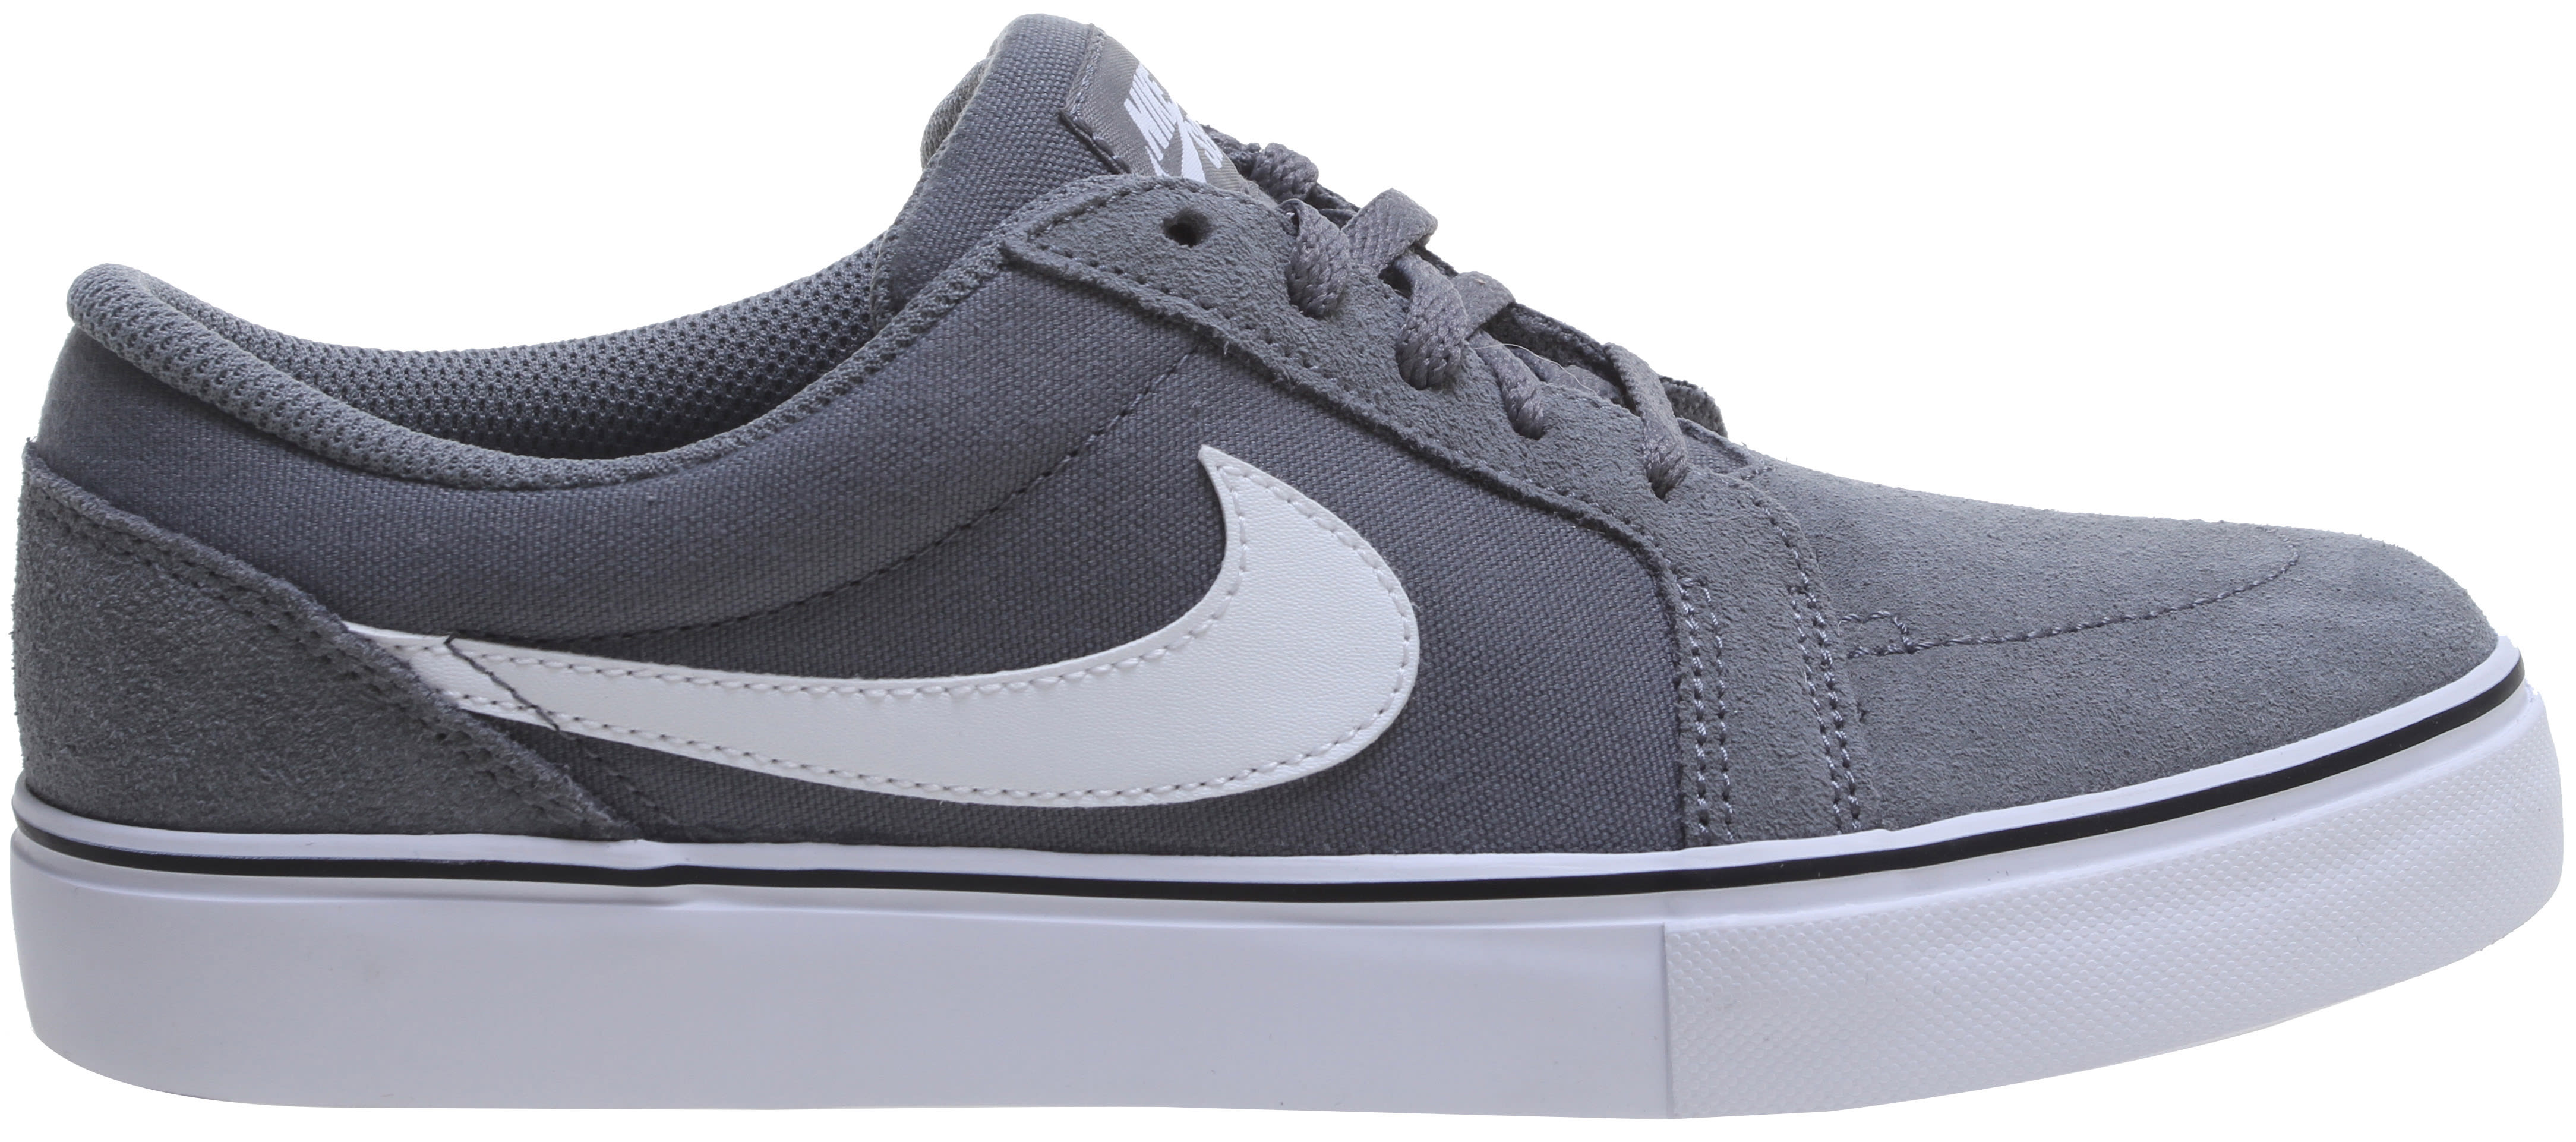 Nike SB Satire II (GS) Skate Shoes - thumbnail 1 2cb65dfceddb3